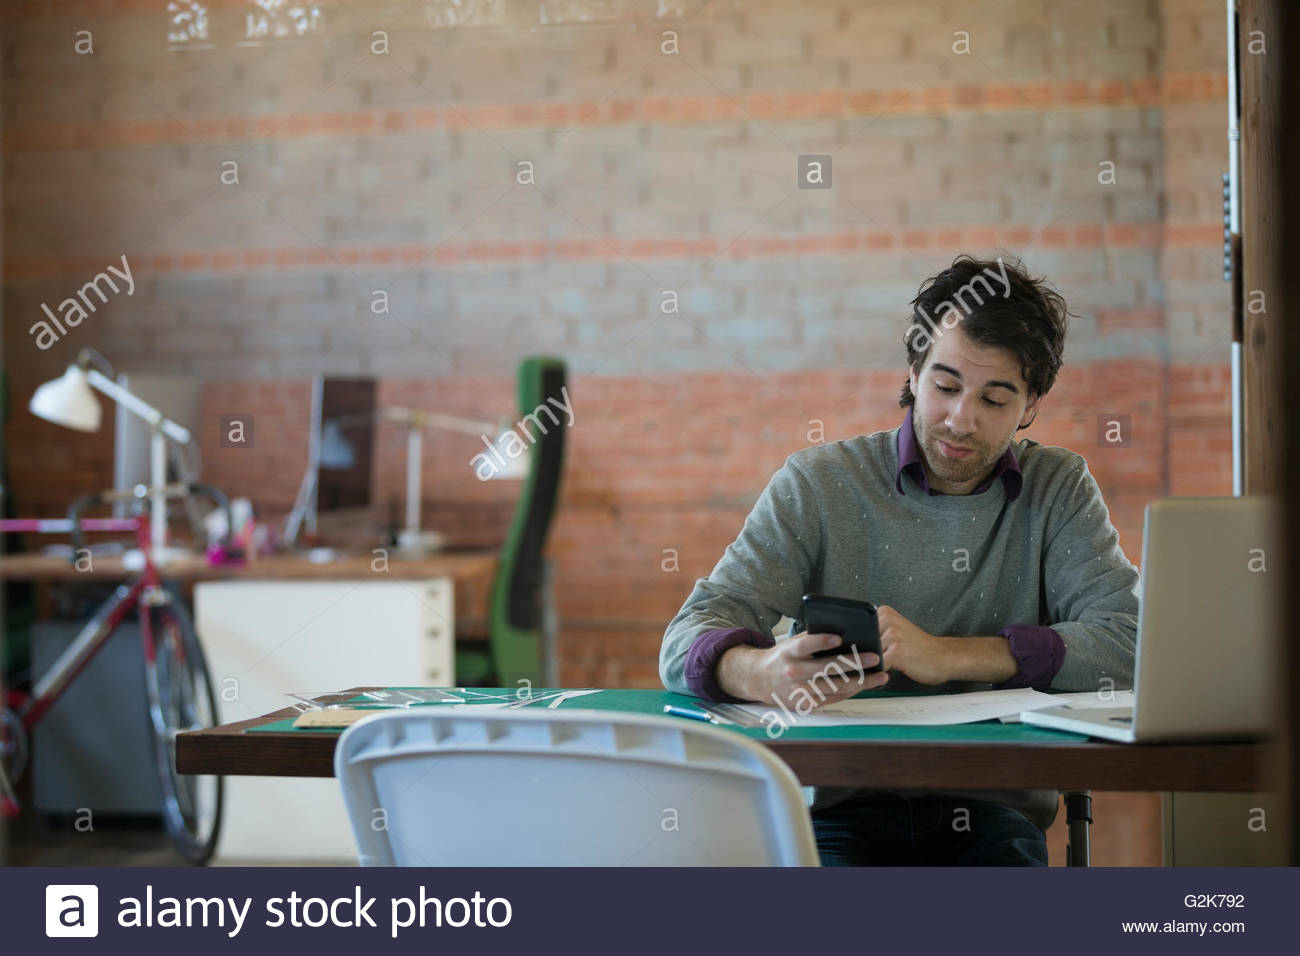 Designer texting with cell phone at desk in office - Stock Image